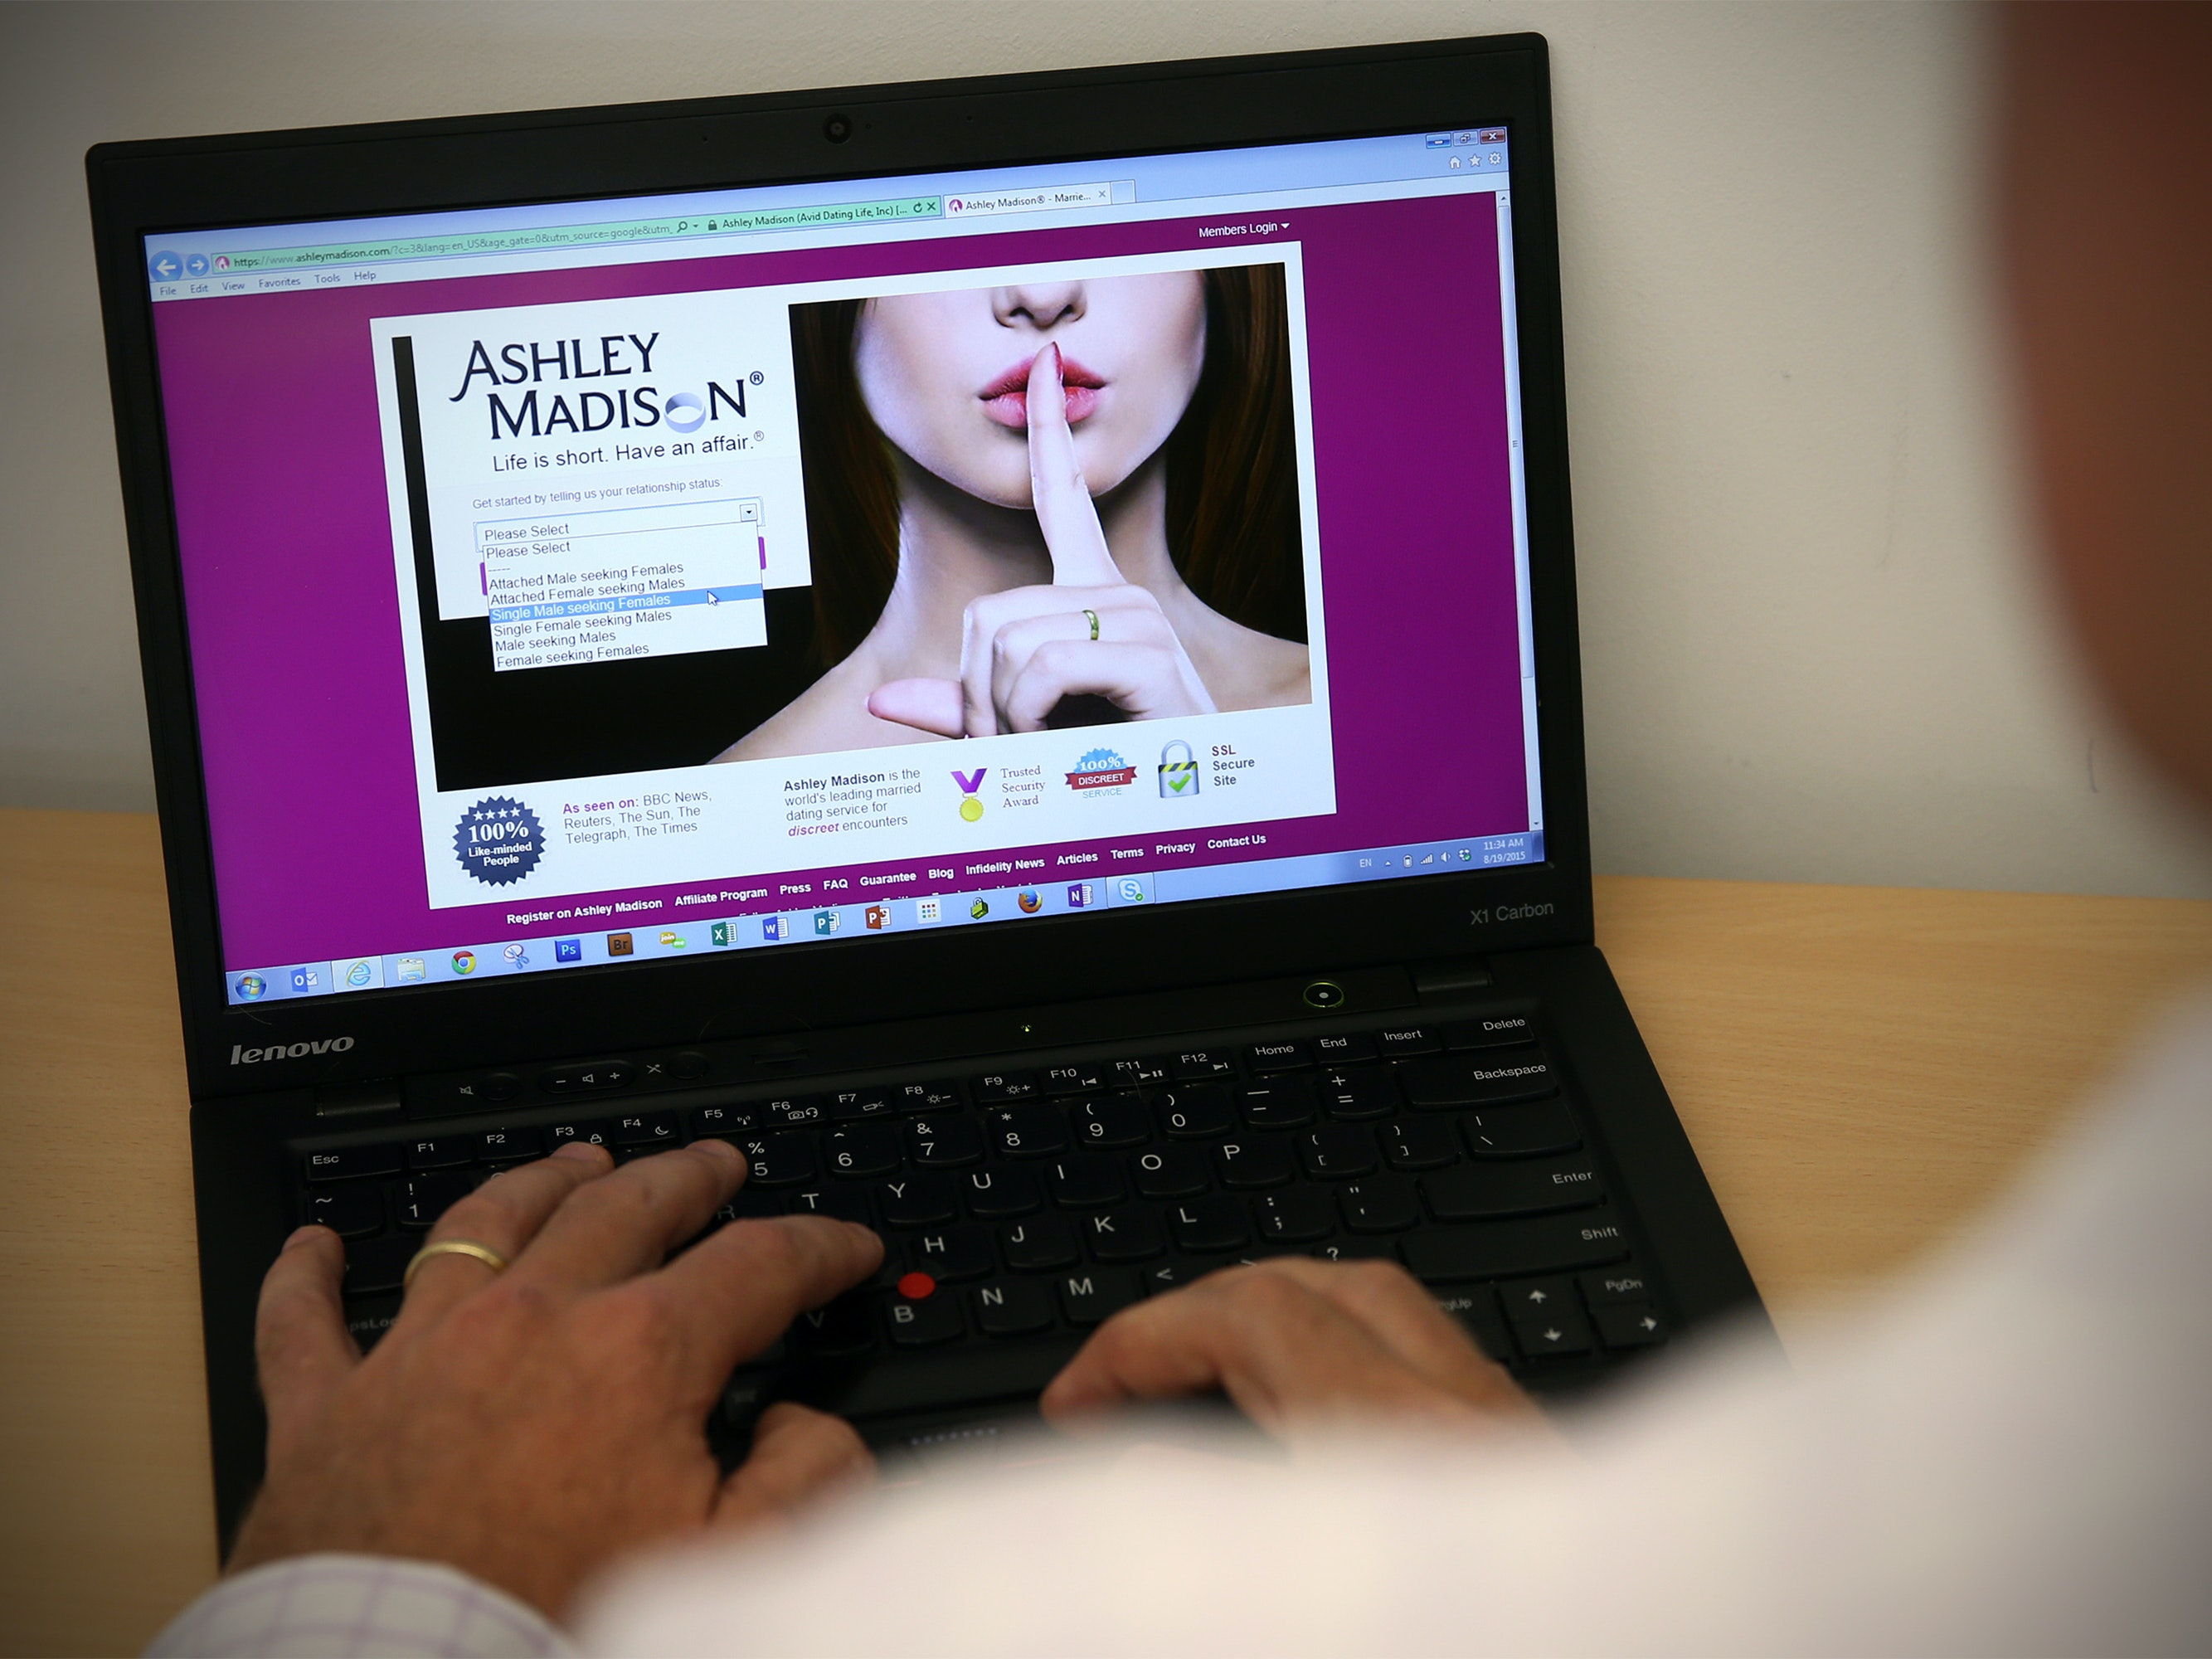 Ashley Madison Wants to Be for Kinks, But Is It?